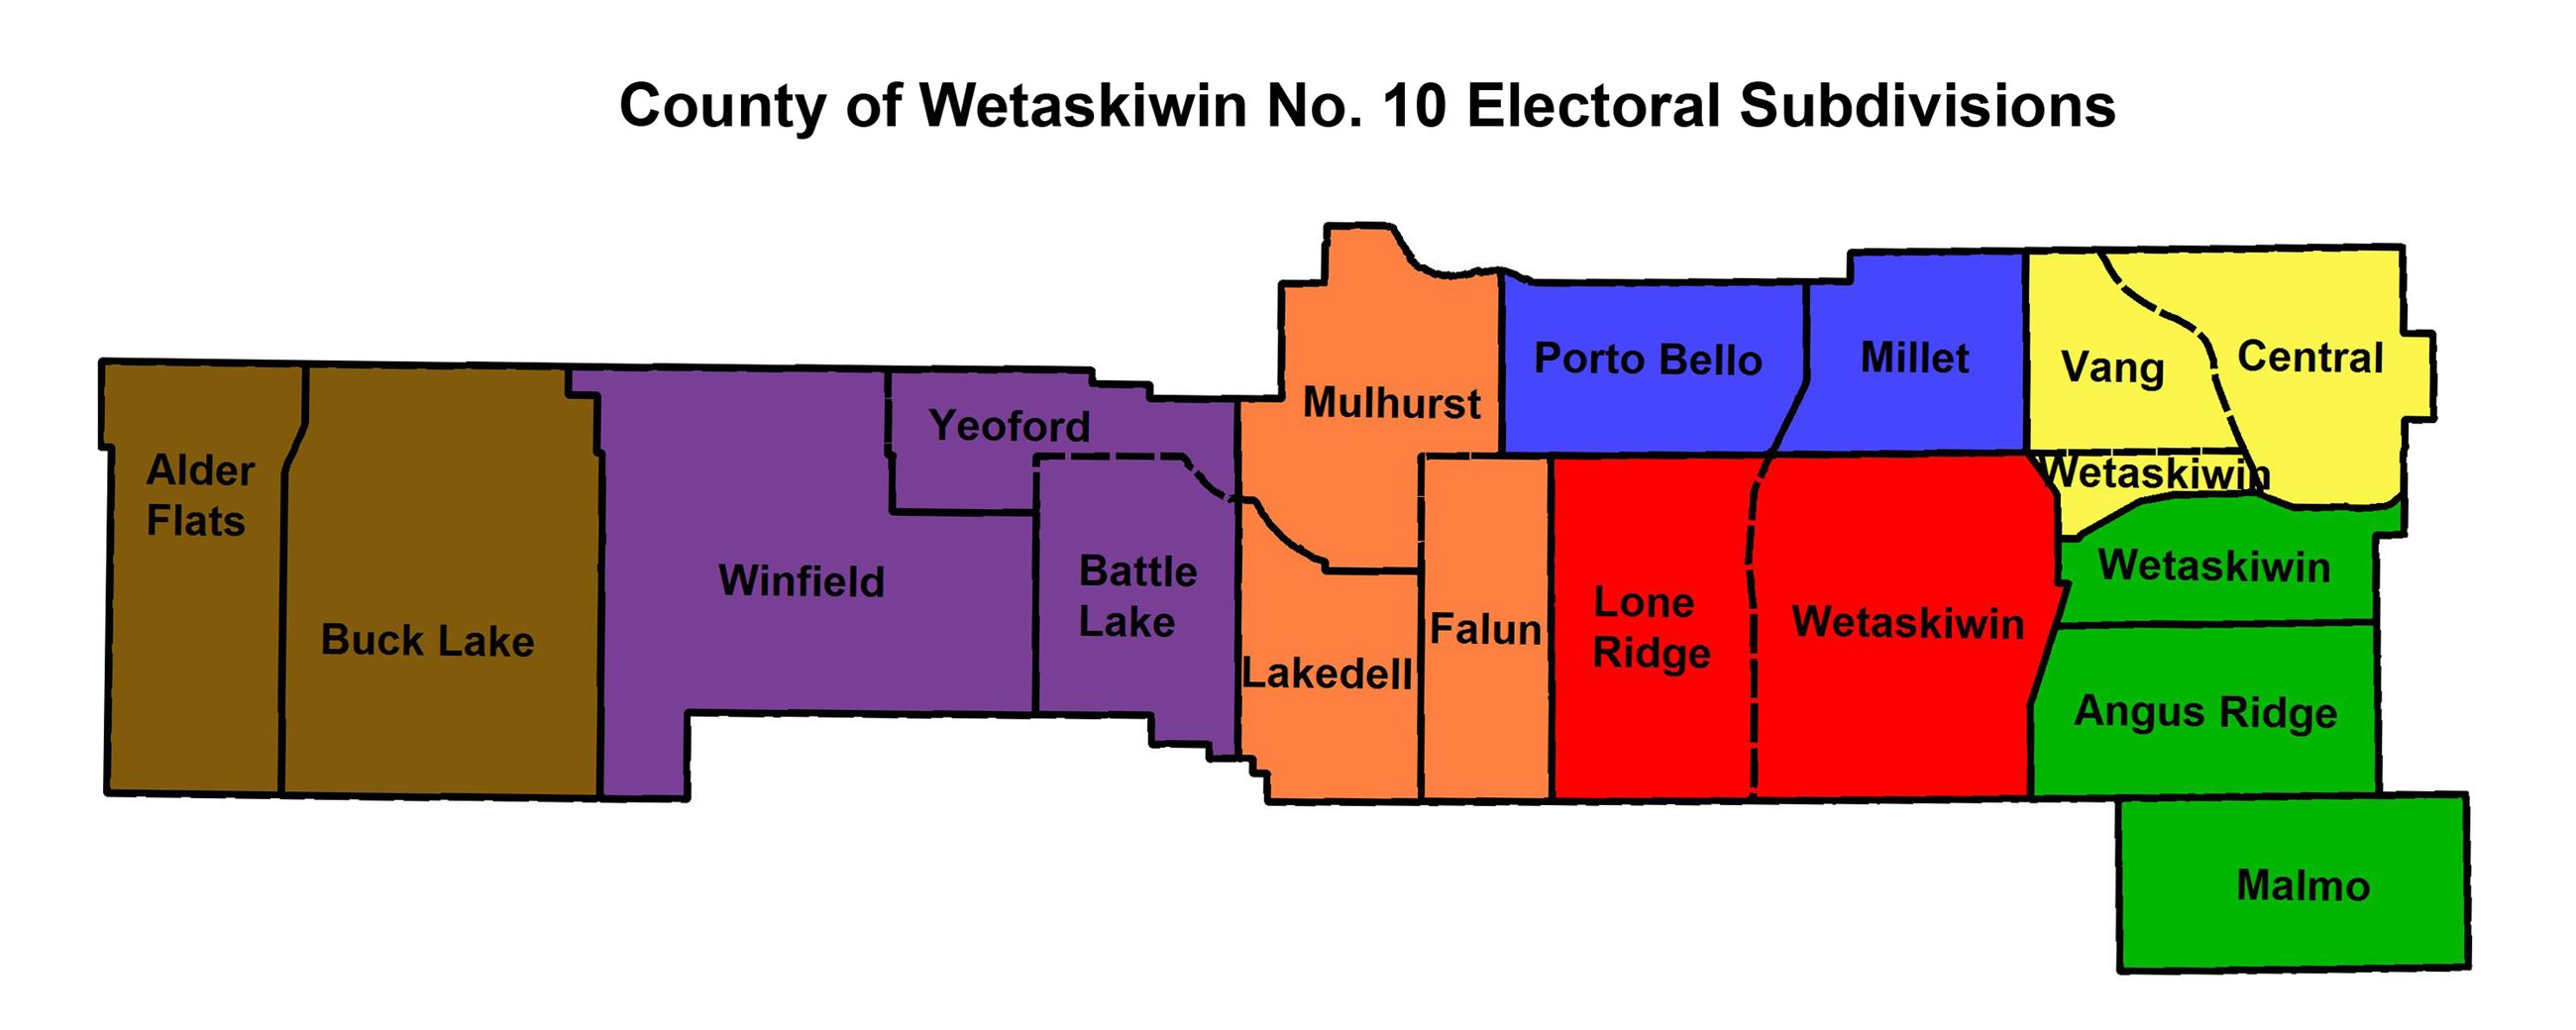 2017 Electoral Division and Subdivision Map